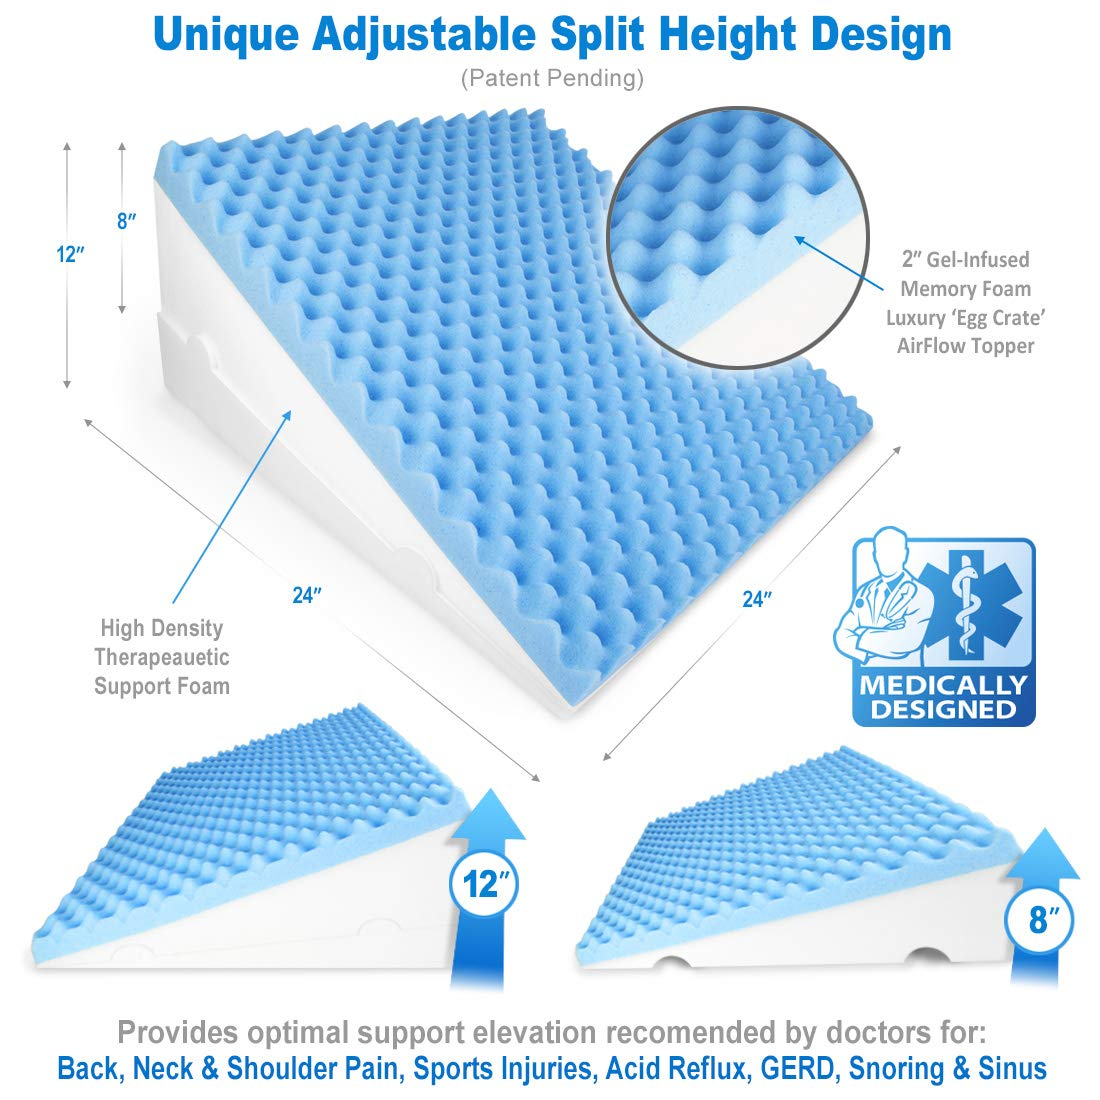 LUXELIFT Support Therapy Bed Wedge Pillow | Multipurpose adjustable 12 inch or 8 inch height | Stay-Cool Gel-Infused Memory Foam, Back & Leg Pillow | Back Pain, Injury, Reflux, GERD, Sinus & Snoring by Zenesse Health (Image #2)